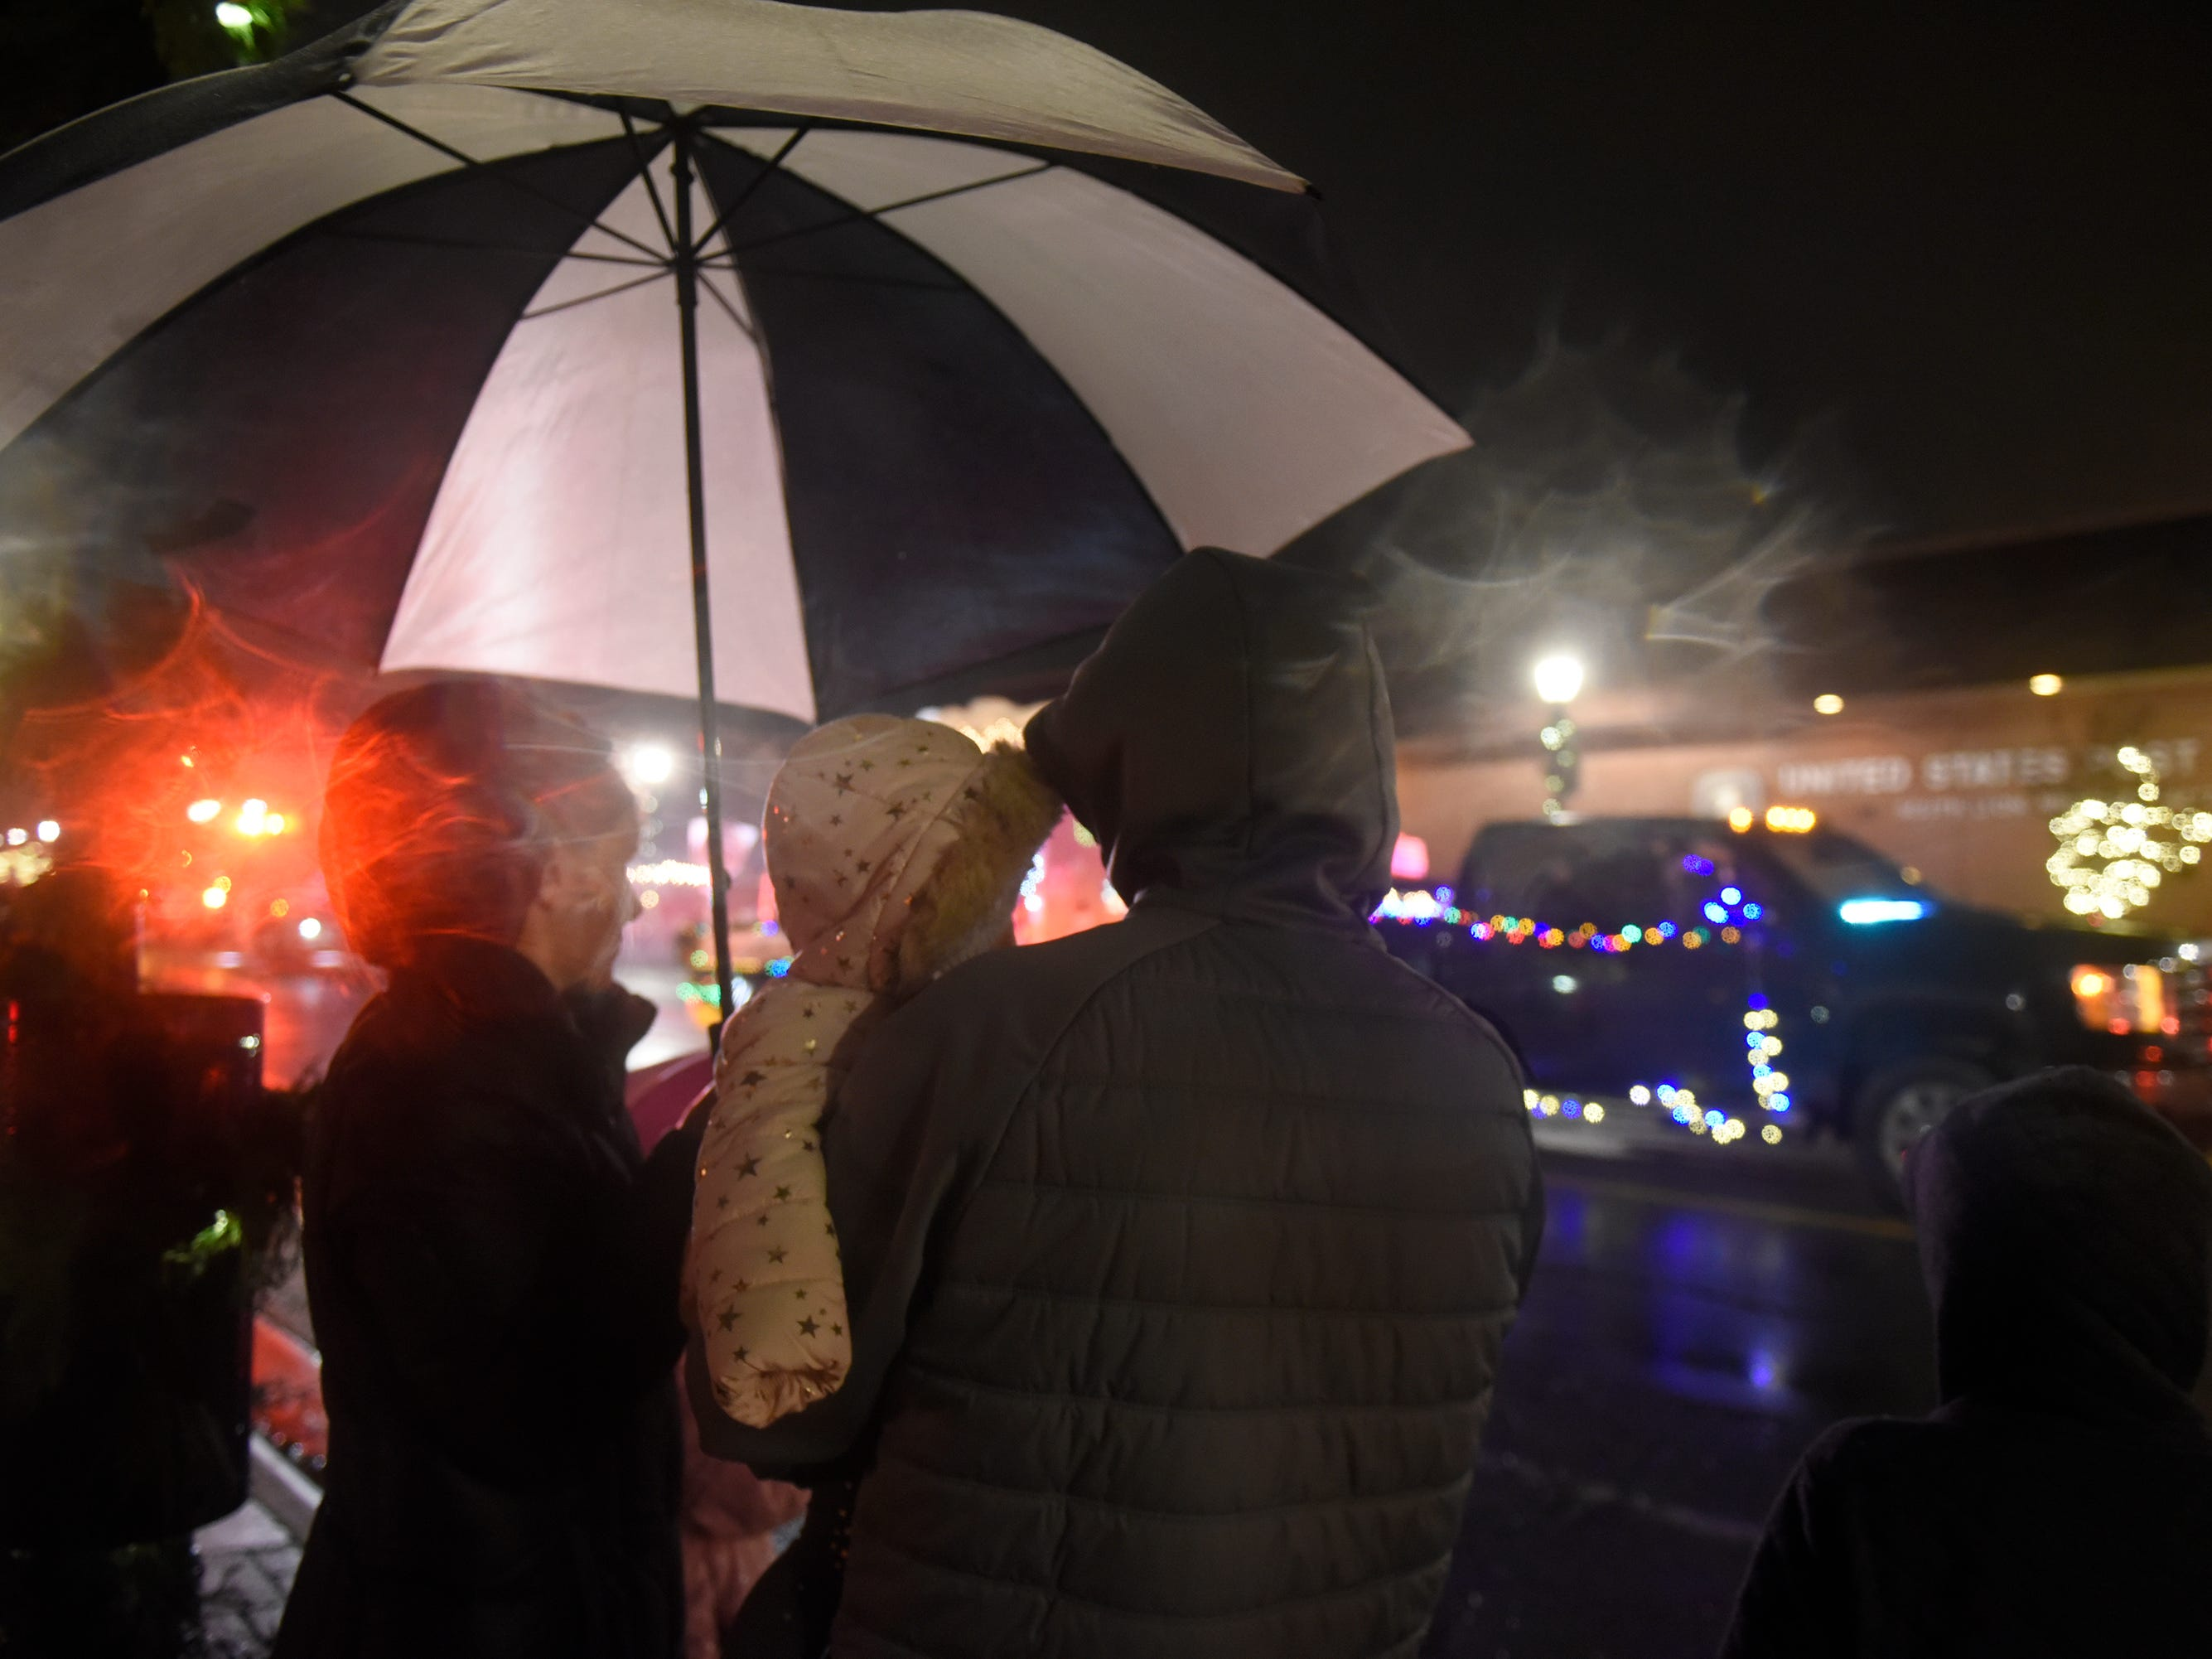 Lighted Parade attendees line Lafayette under umbrellas during South Lyon's Cool Yule celebration Dec. 1, 2018.